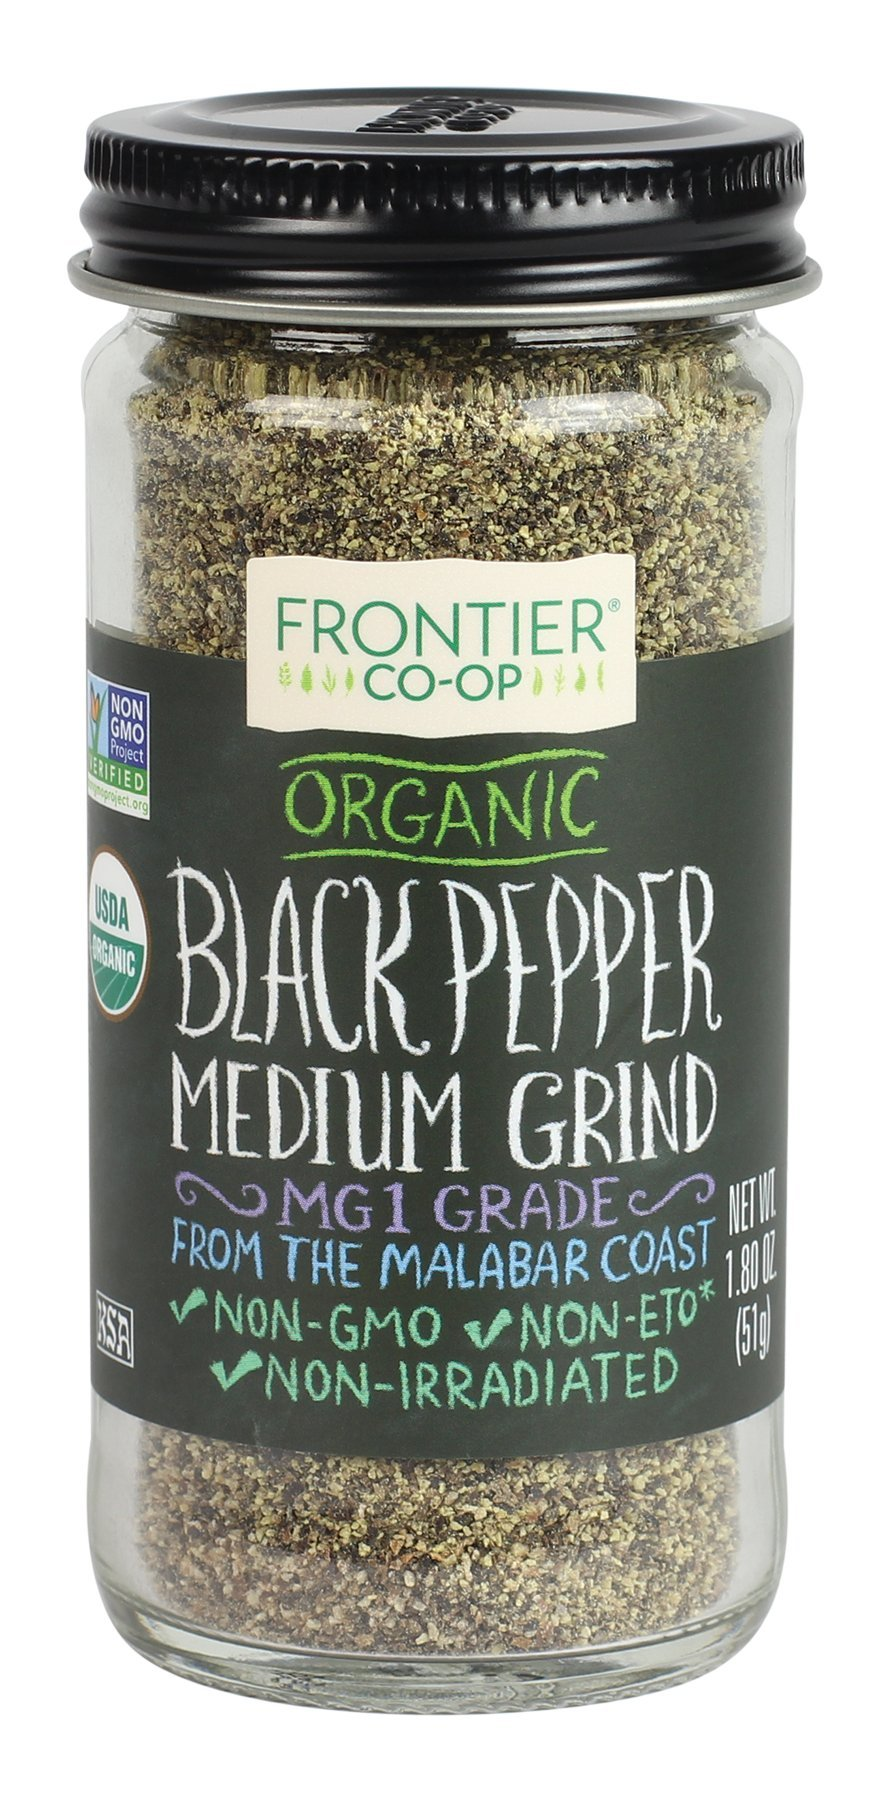 Frontier Natural Black Pepper Medium Grind Organic, 1.8000-ounces (Pack of3)